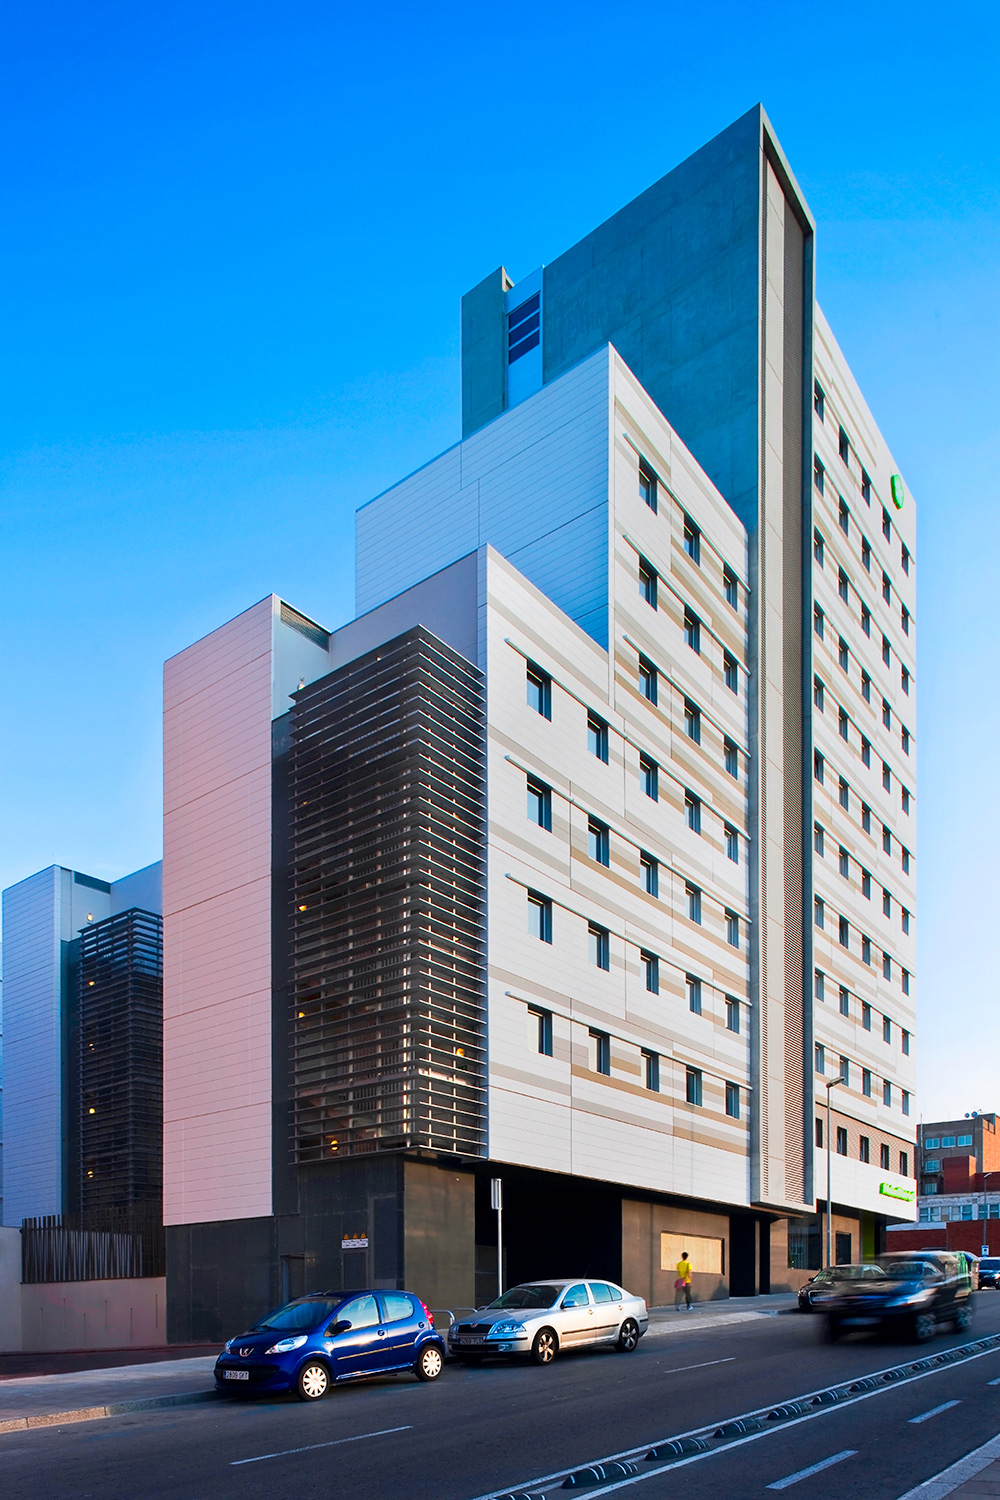 Melon District Hotel  |  Blanch & Conca  |  Barcelona